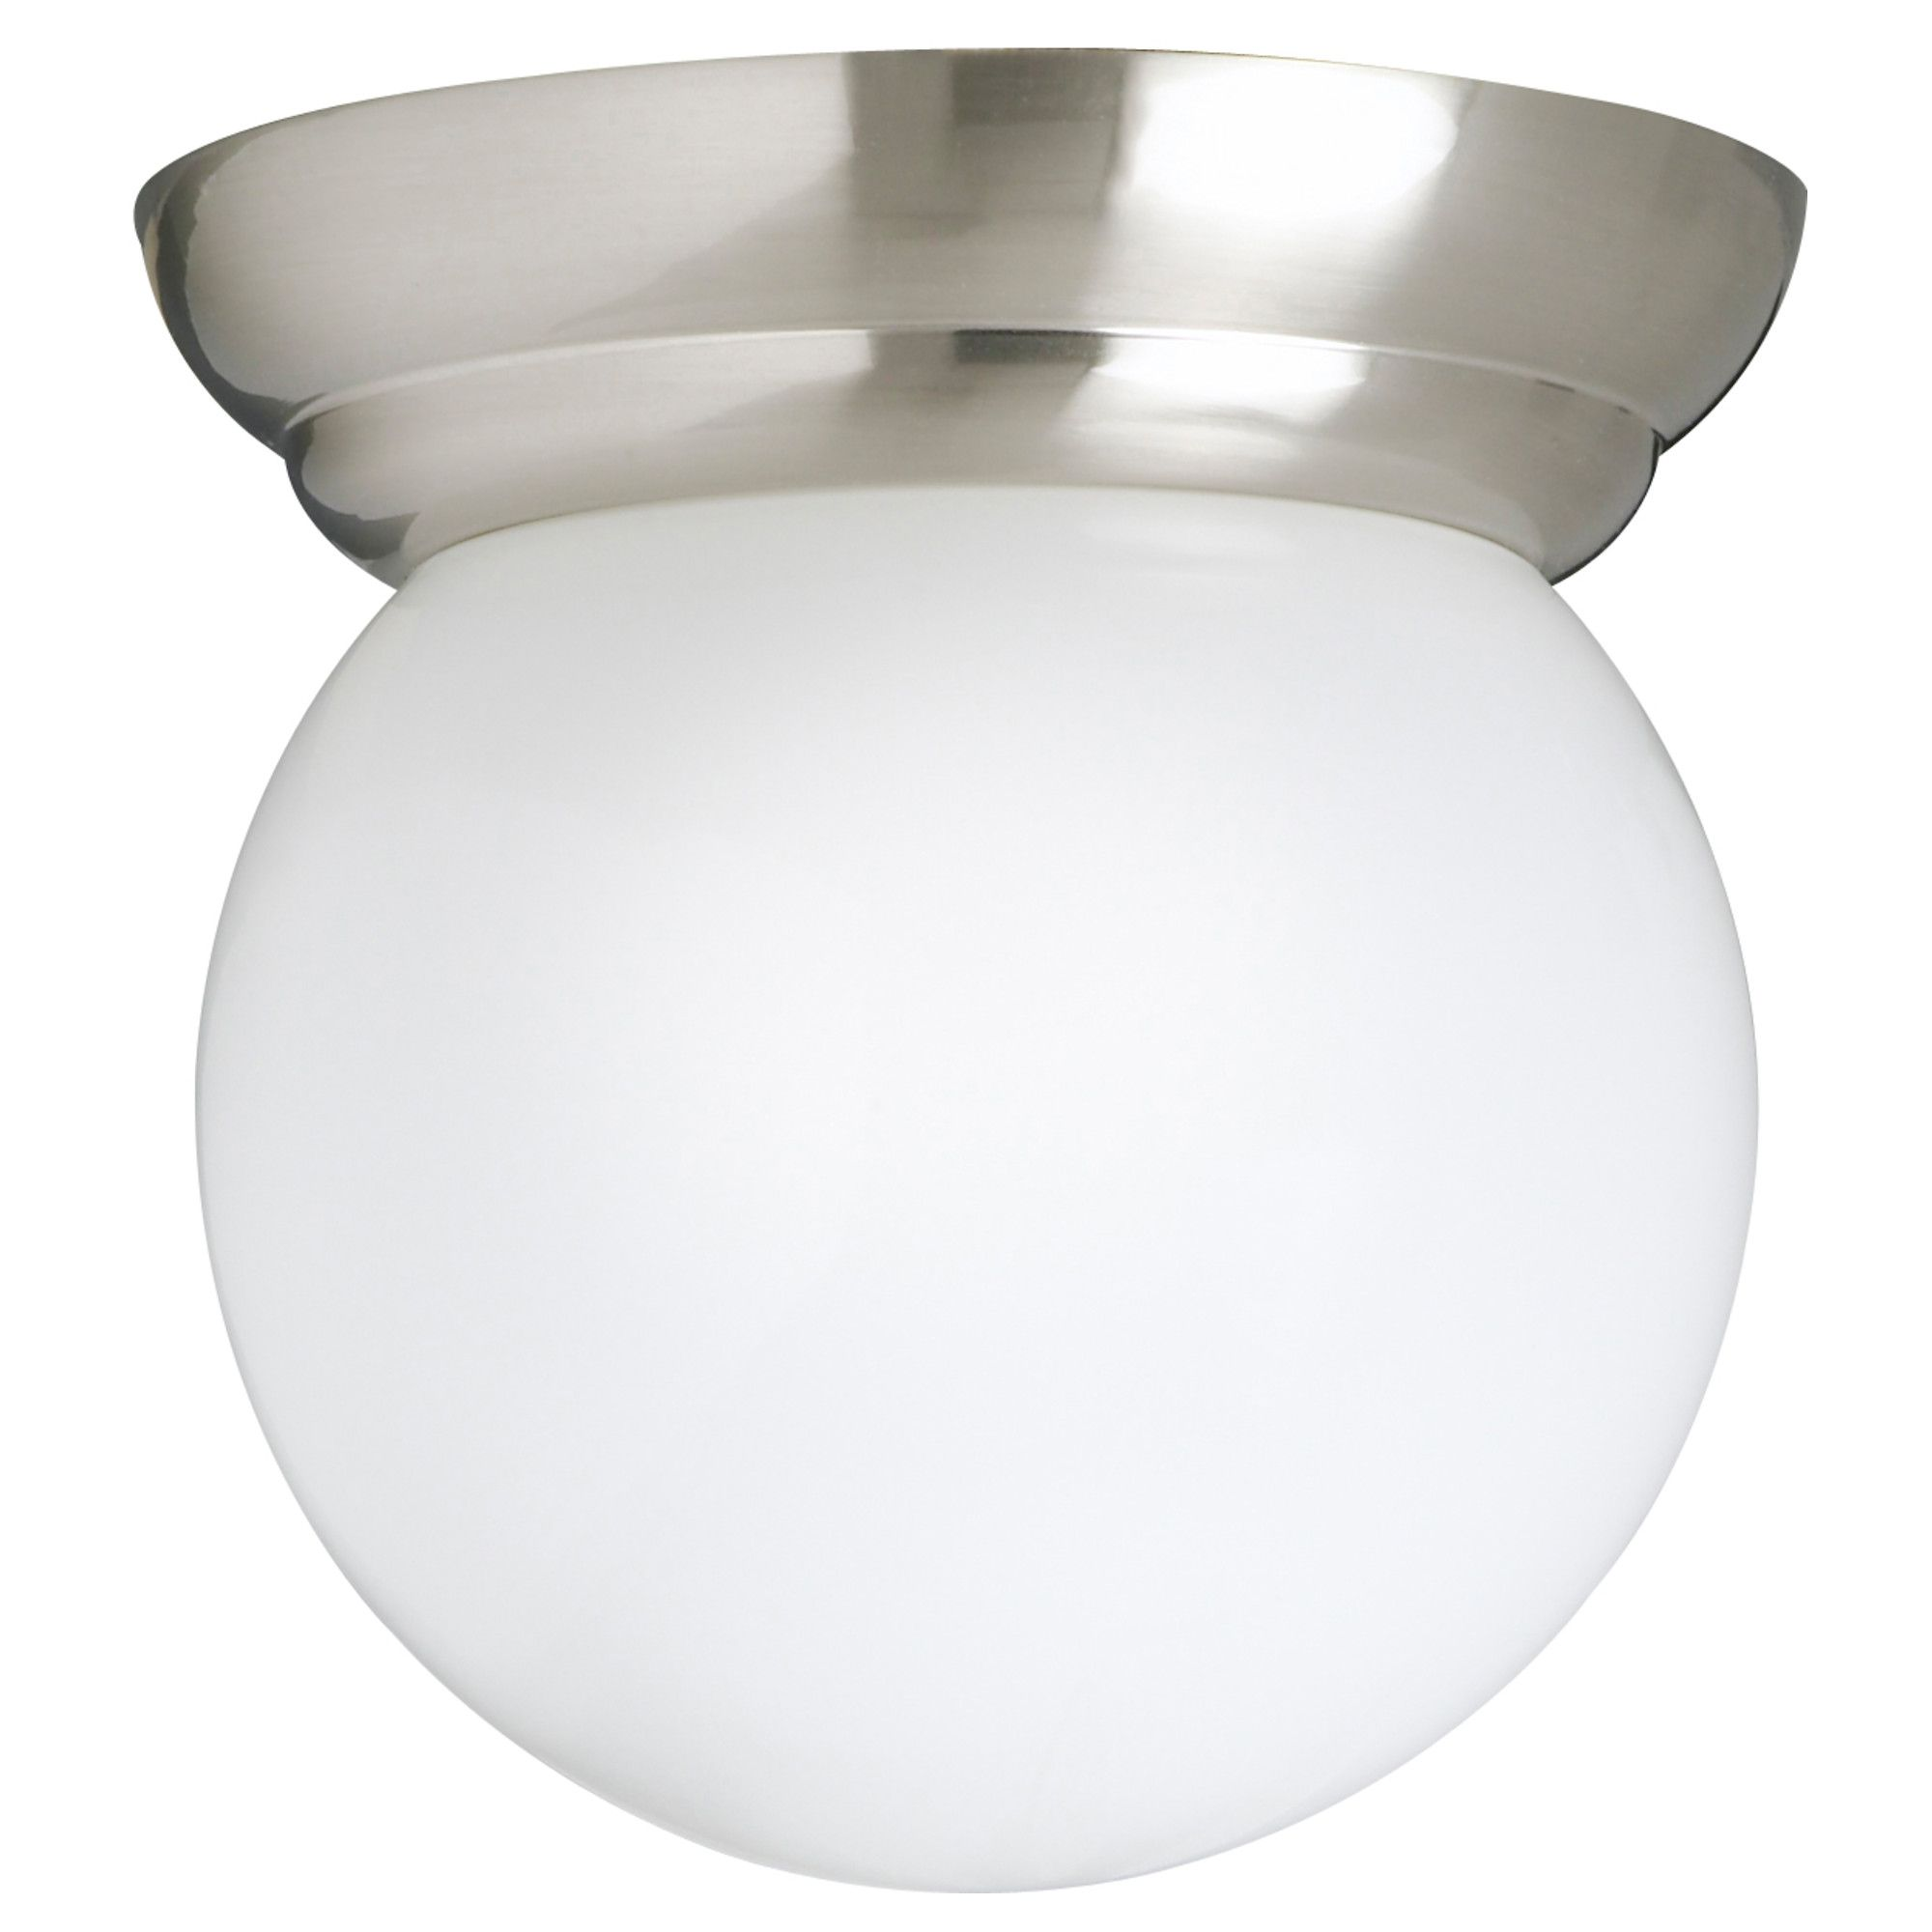 Mobilier Et Decoration Interieur Et Exterieur Wall Lamp Ikea Bathroom Ikea Wall Lights